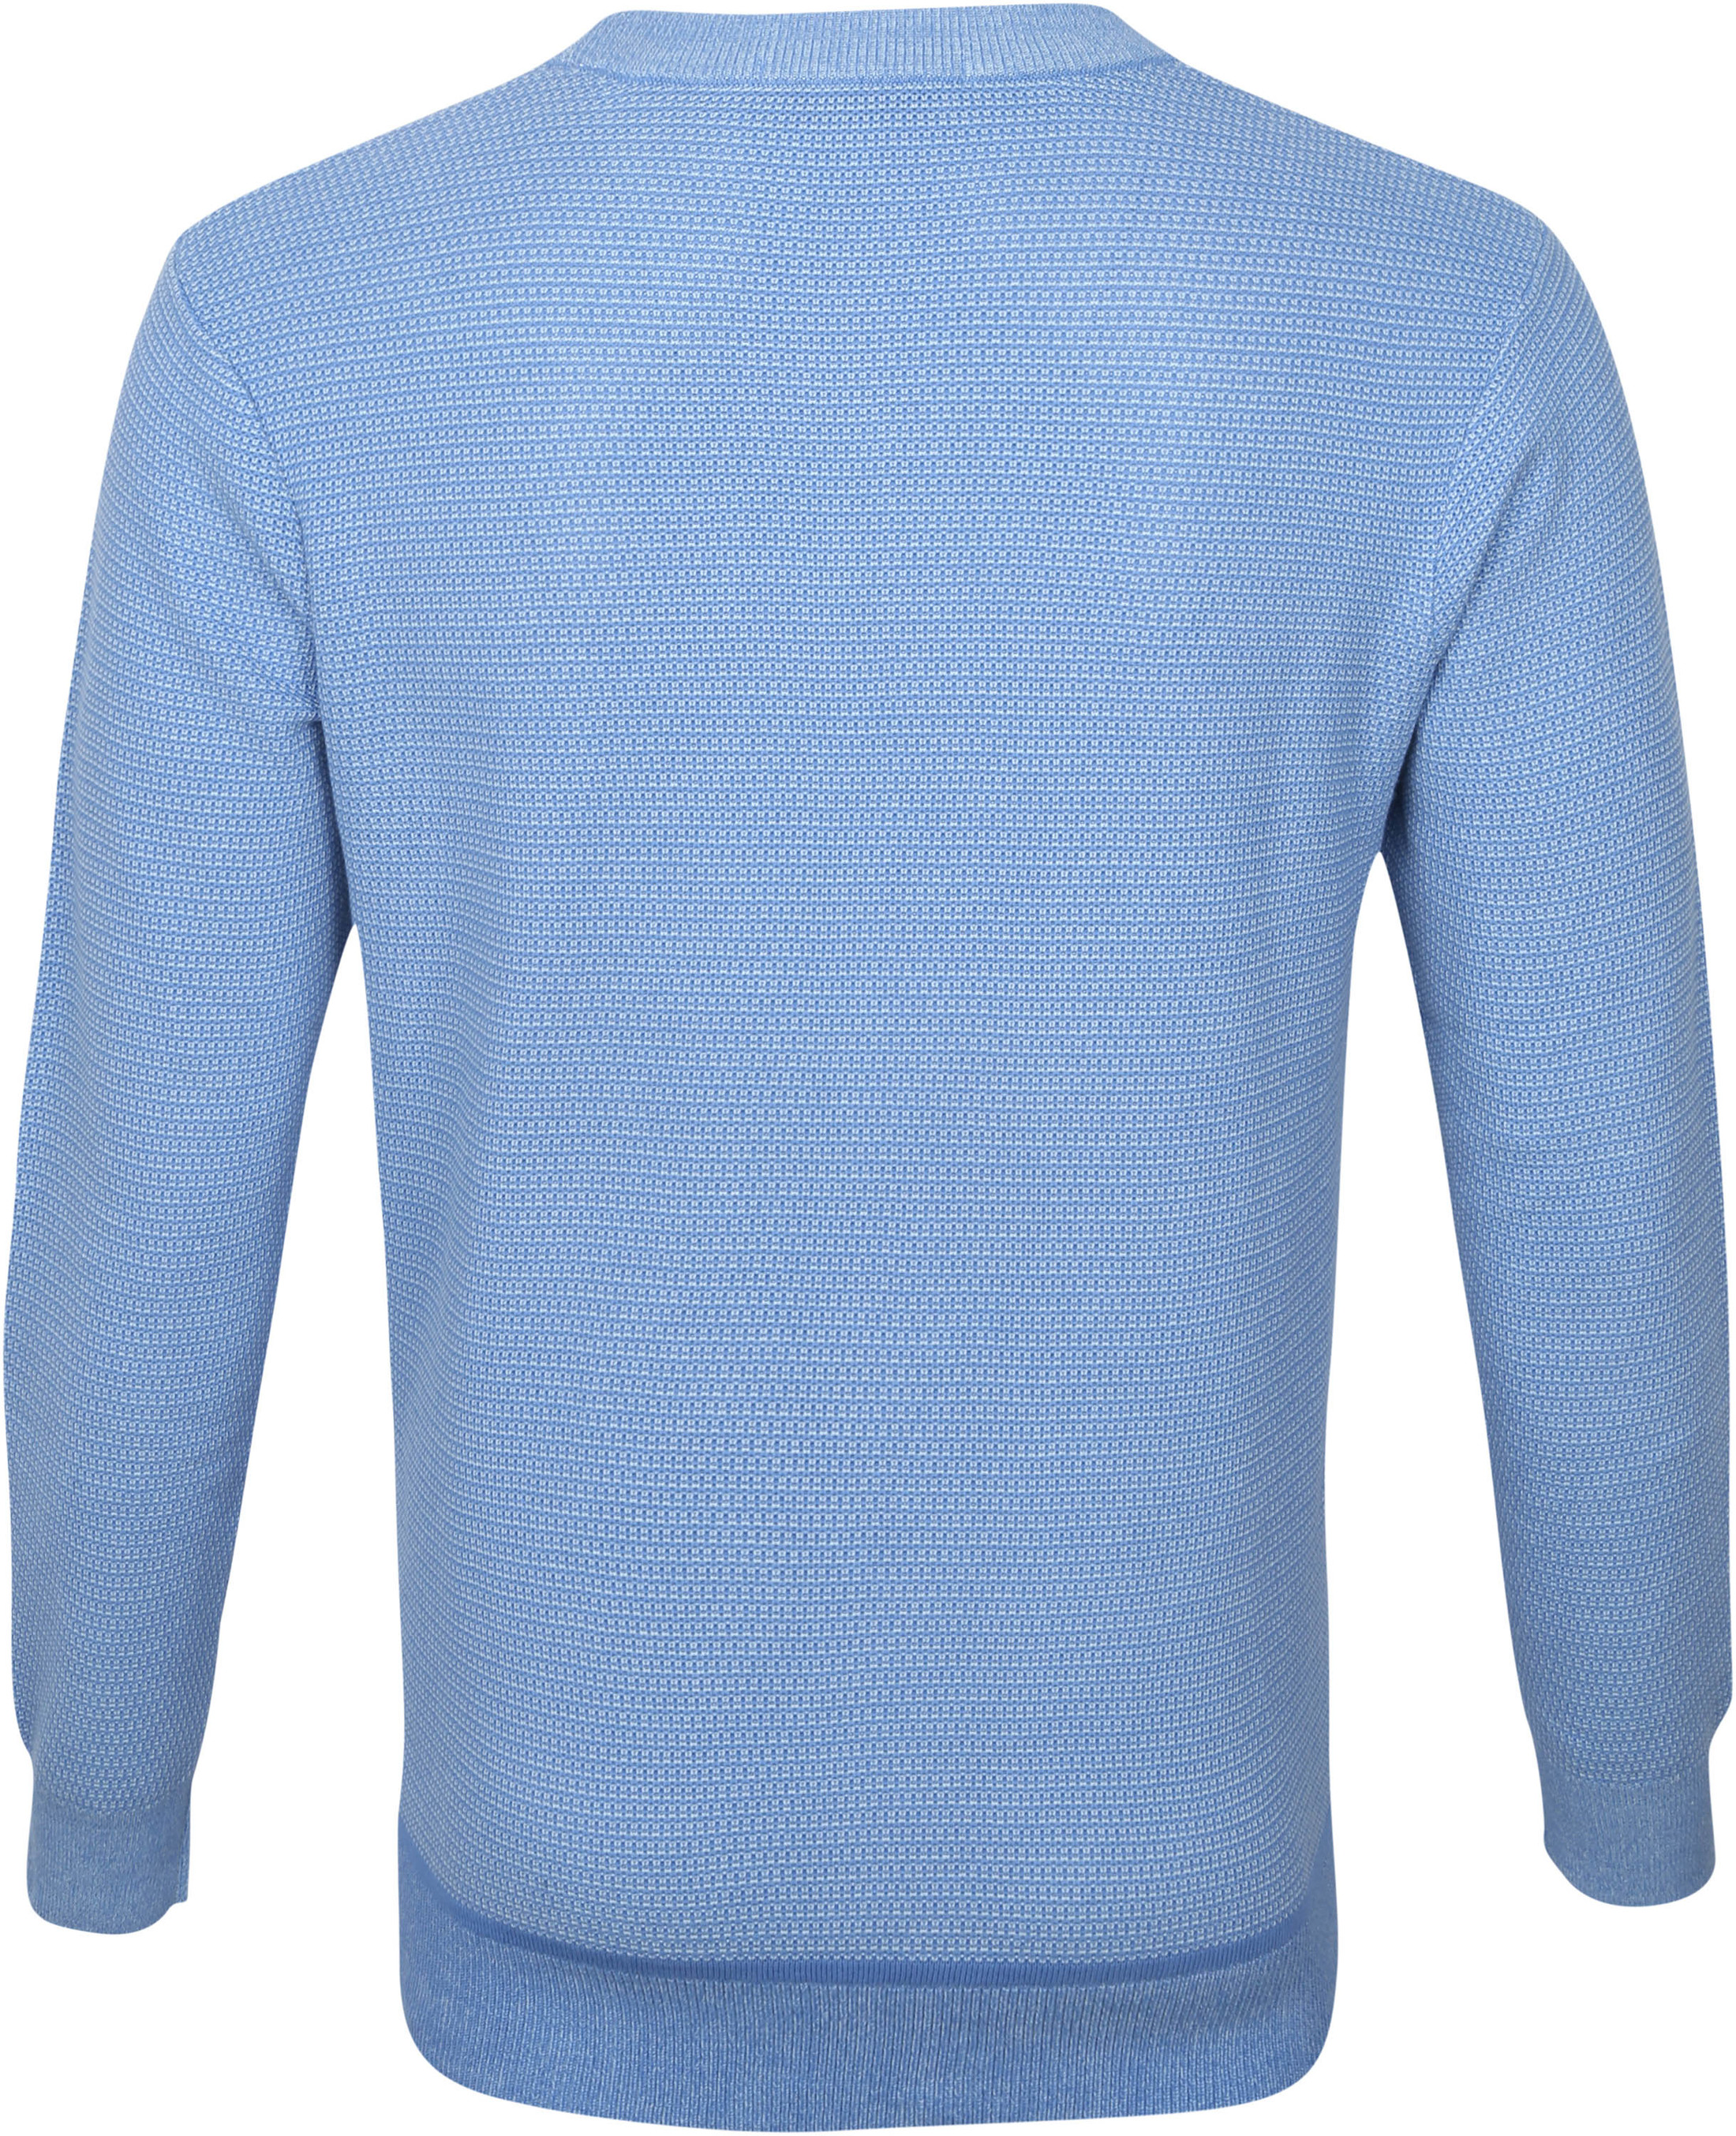 Scotch and Soda Sweater Gebreid Blauw